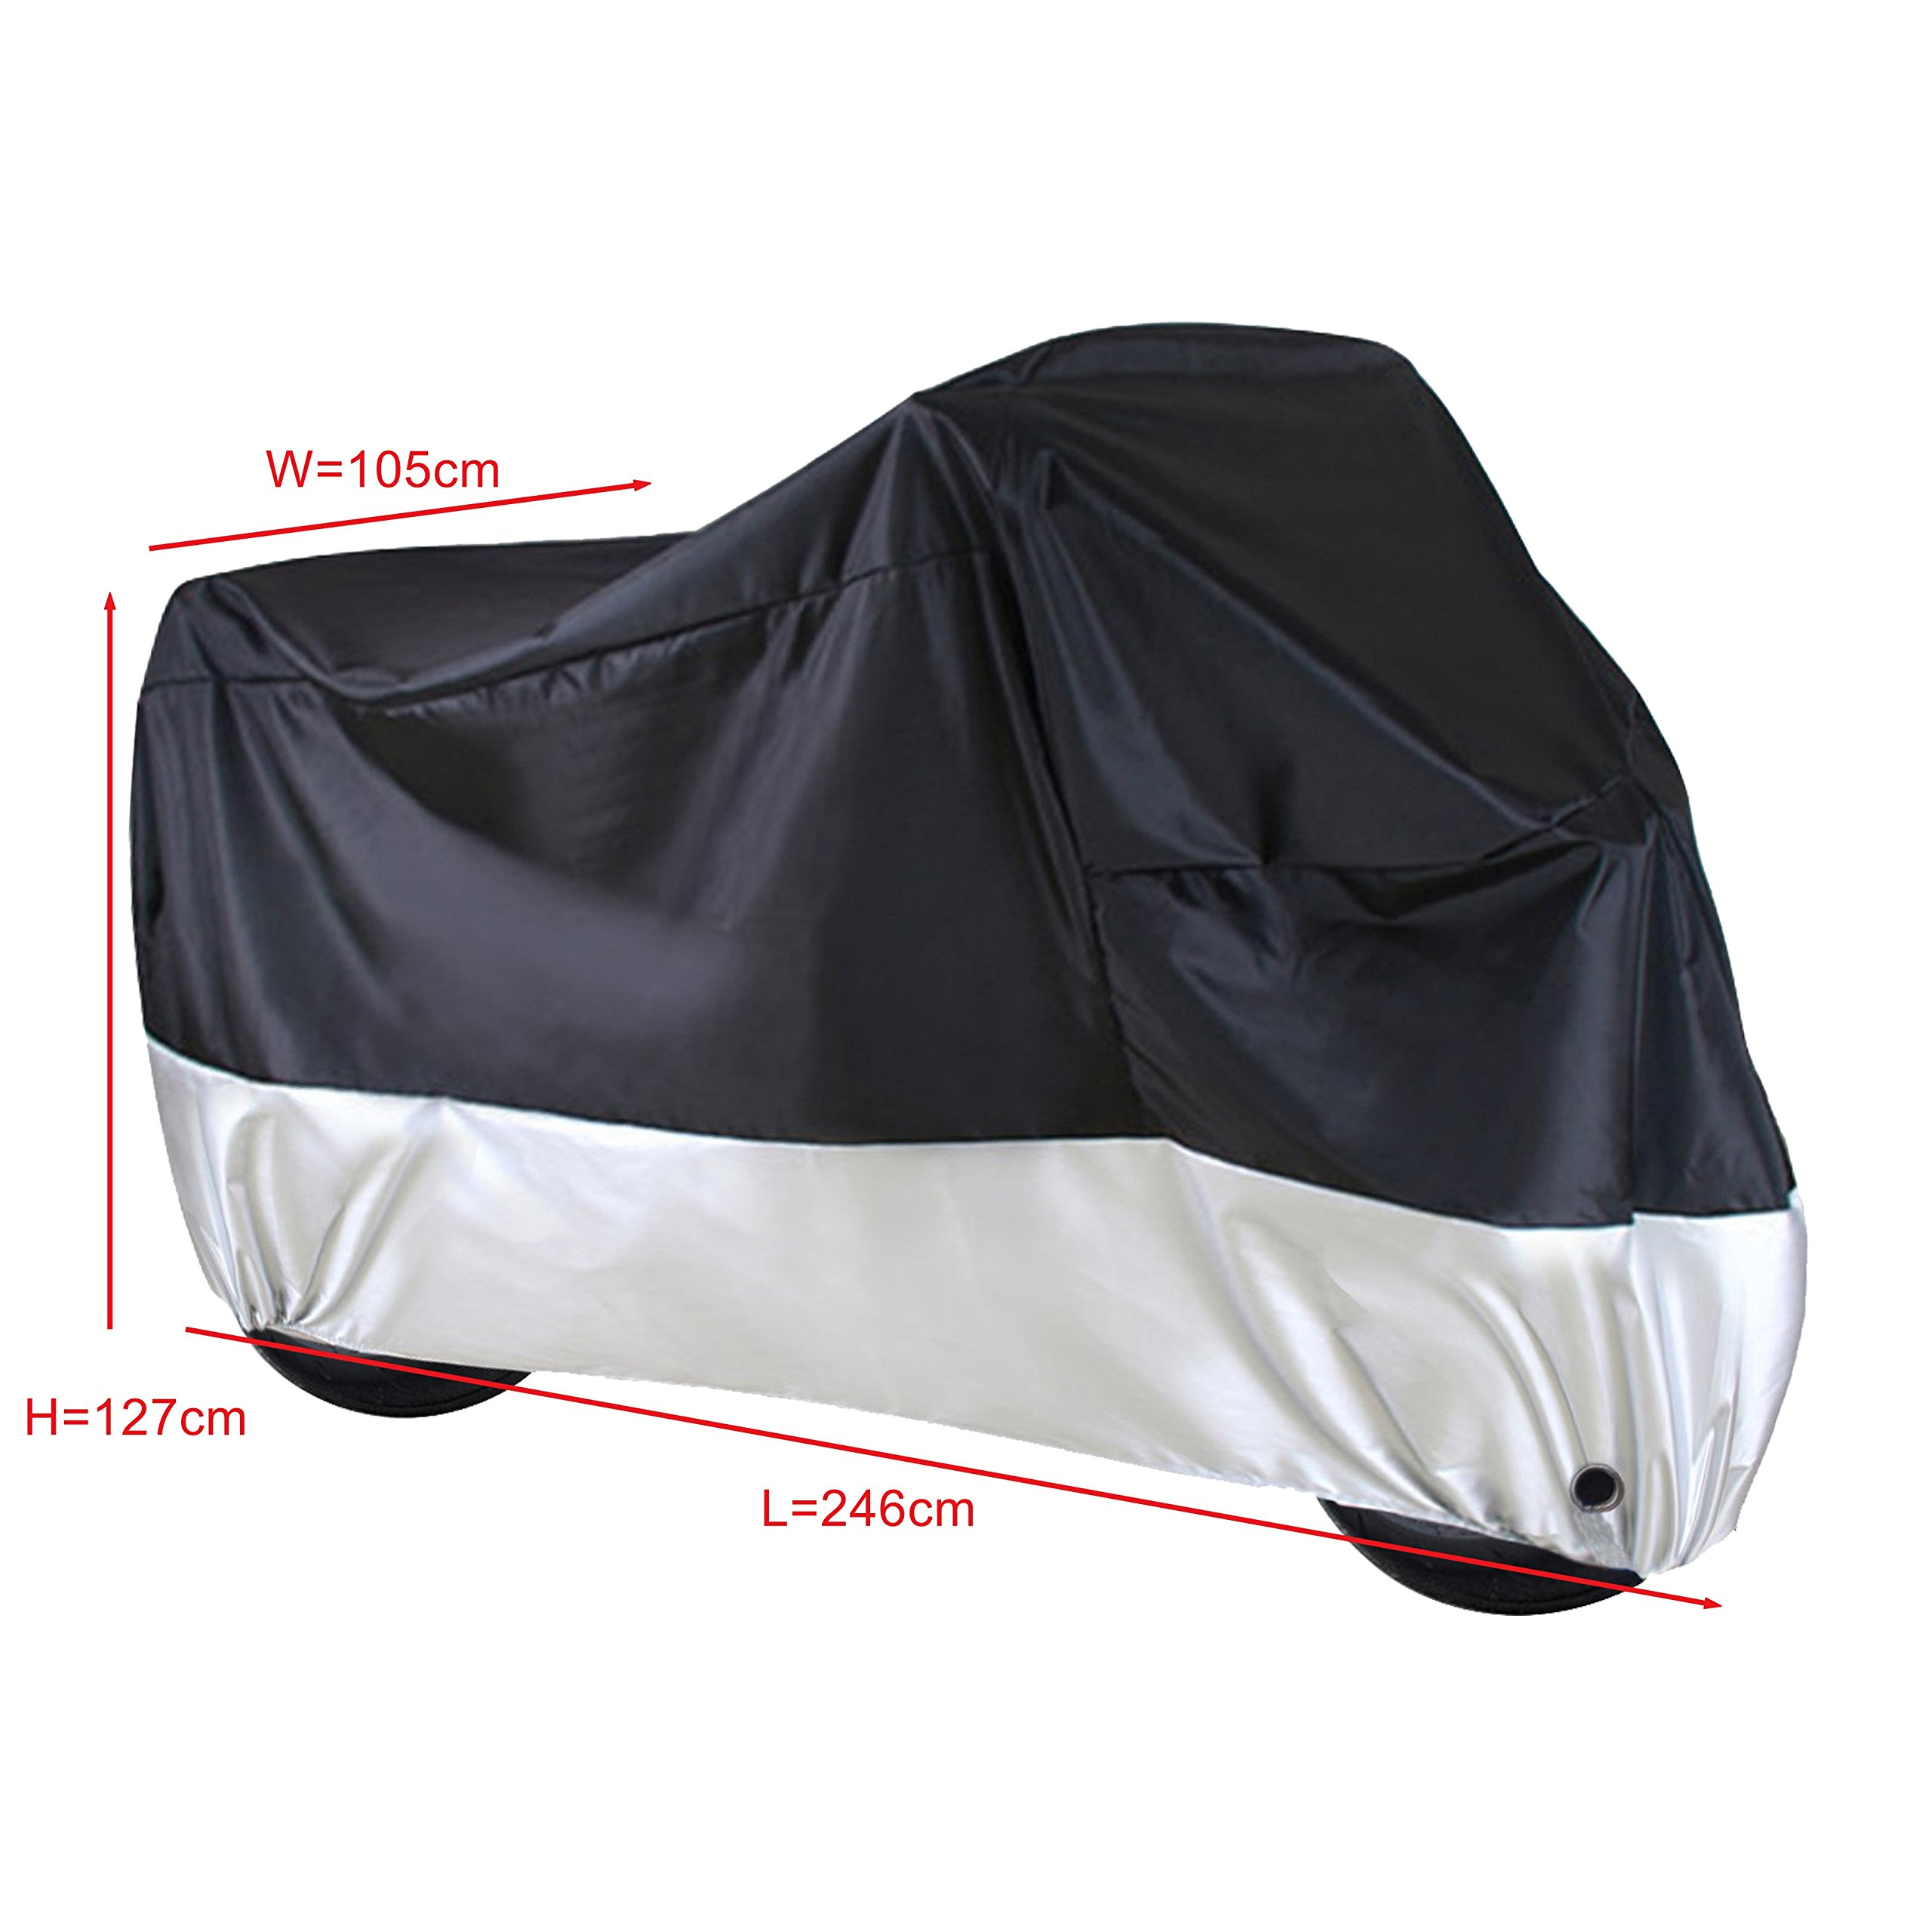 YaeTek Deluxe Motorcycle Cover, Weather Protection, UV, Air Vents, Heat Shield, Windshield Liner, Compression Bag, Grommets, Large fits Sport Bikes(XL:96''41''50'')